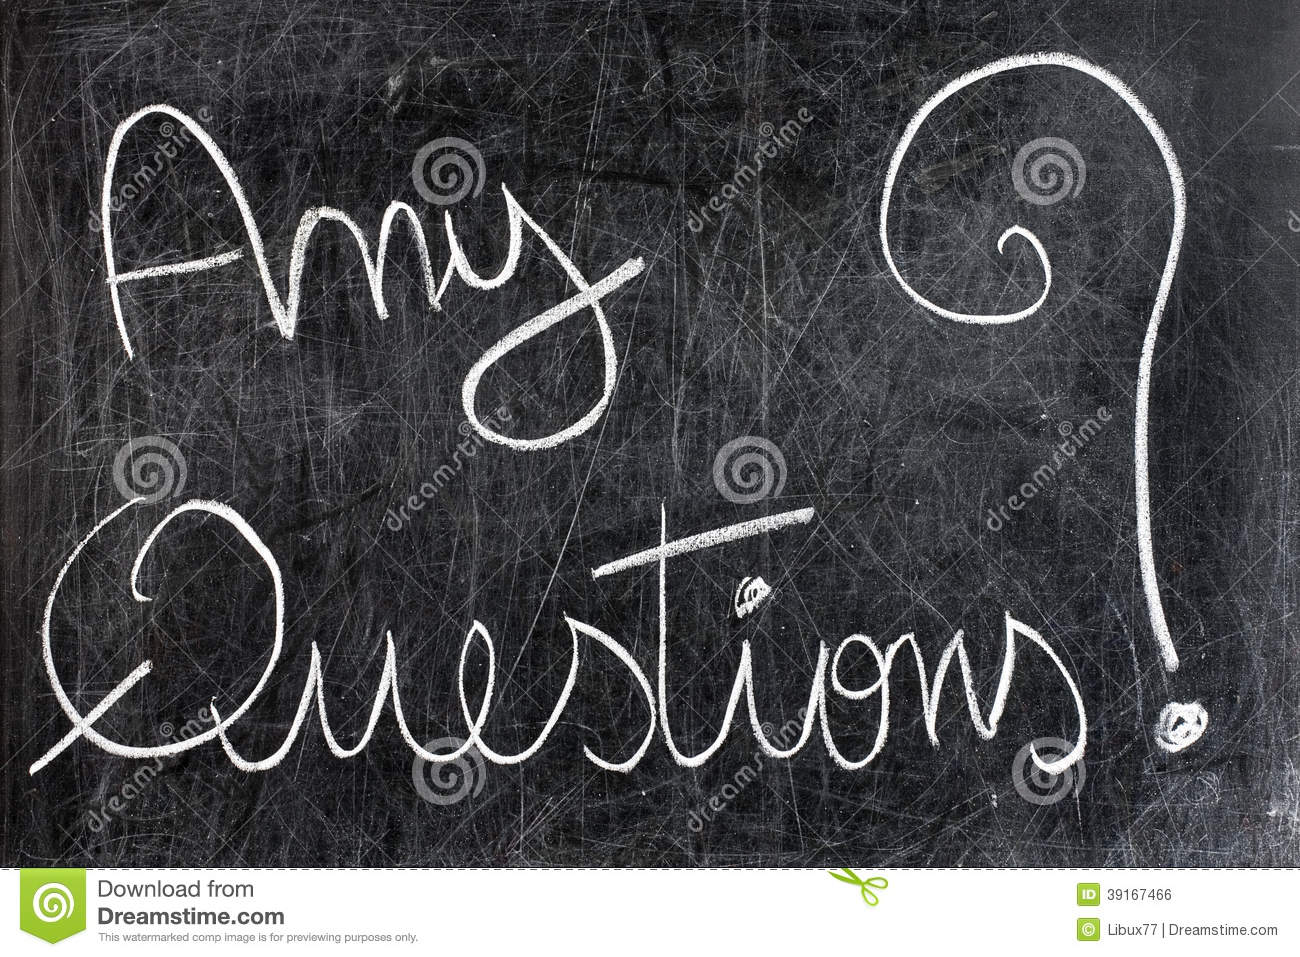 Any Questions Animation Any Questions on Chalkboard